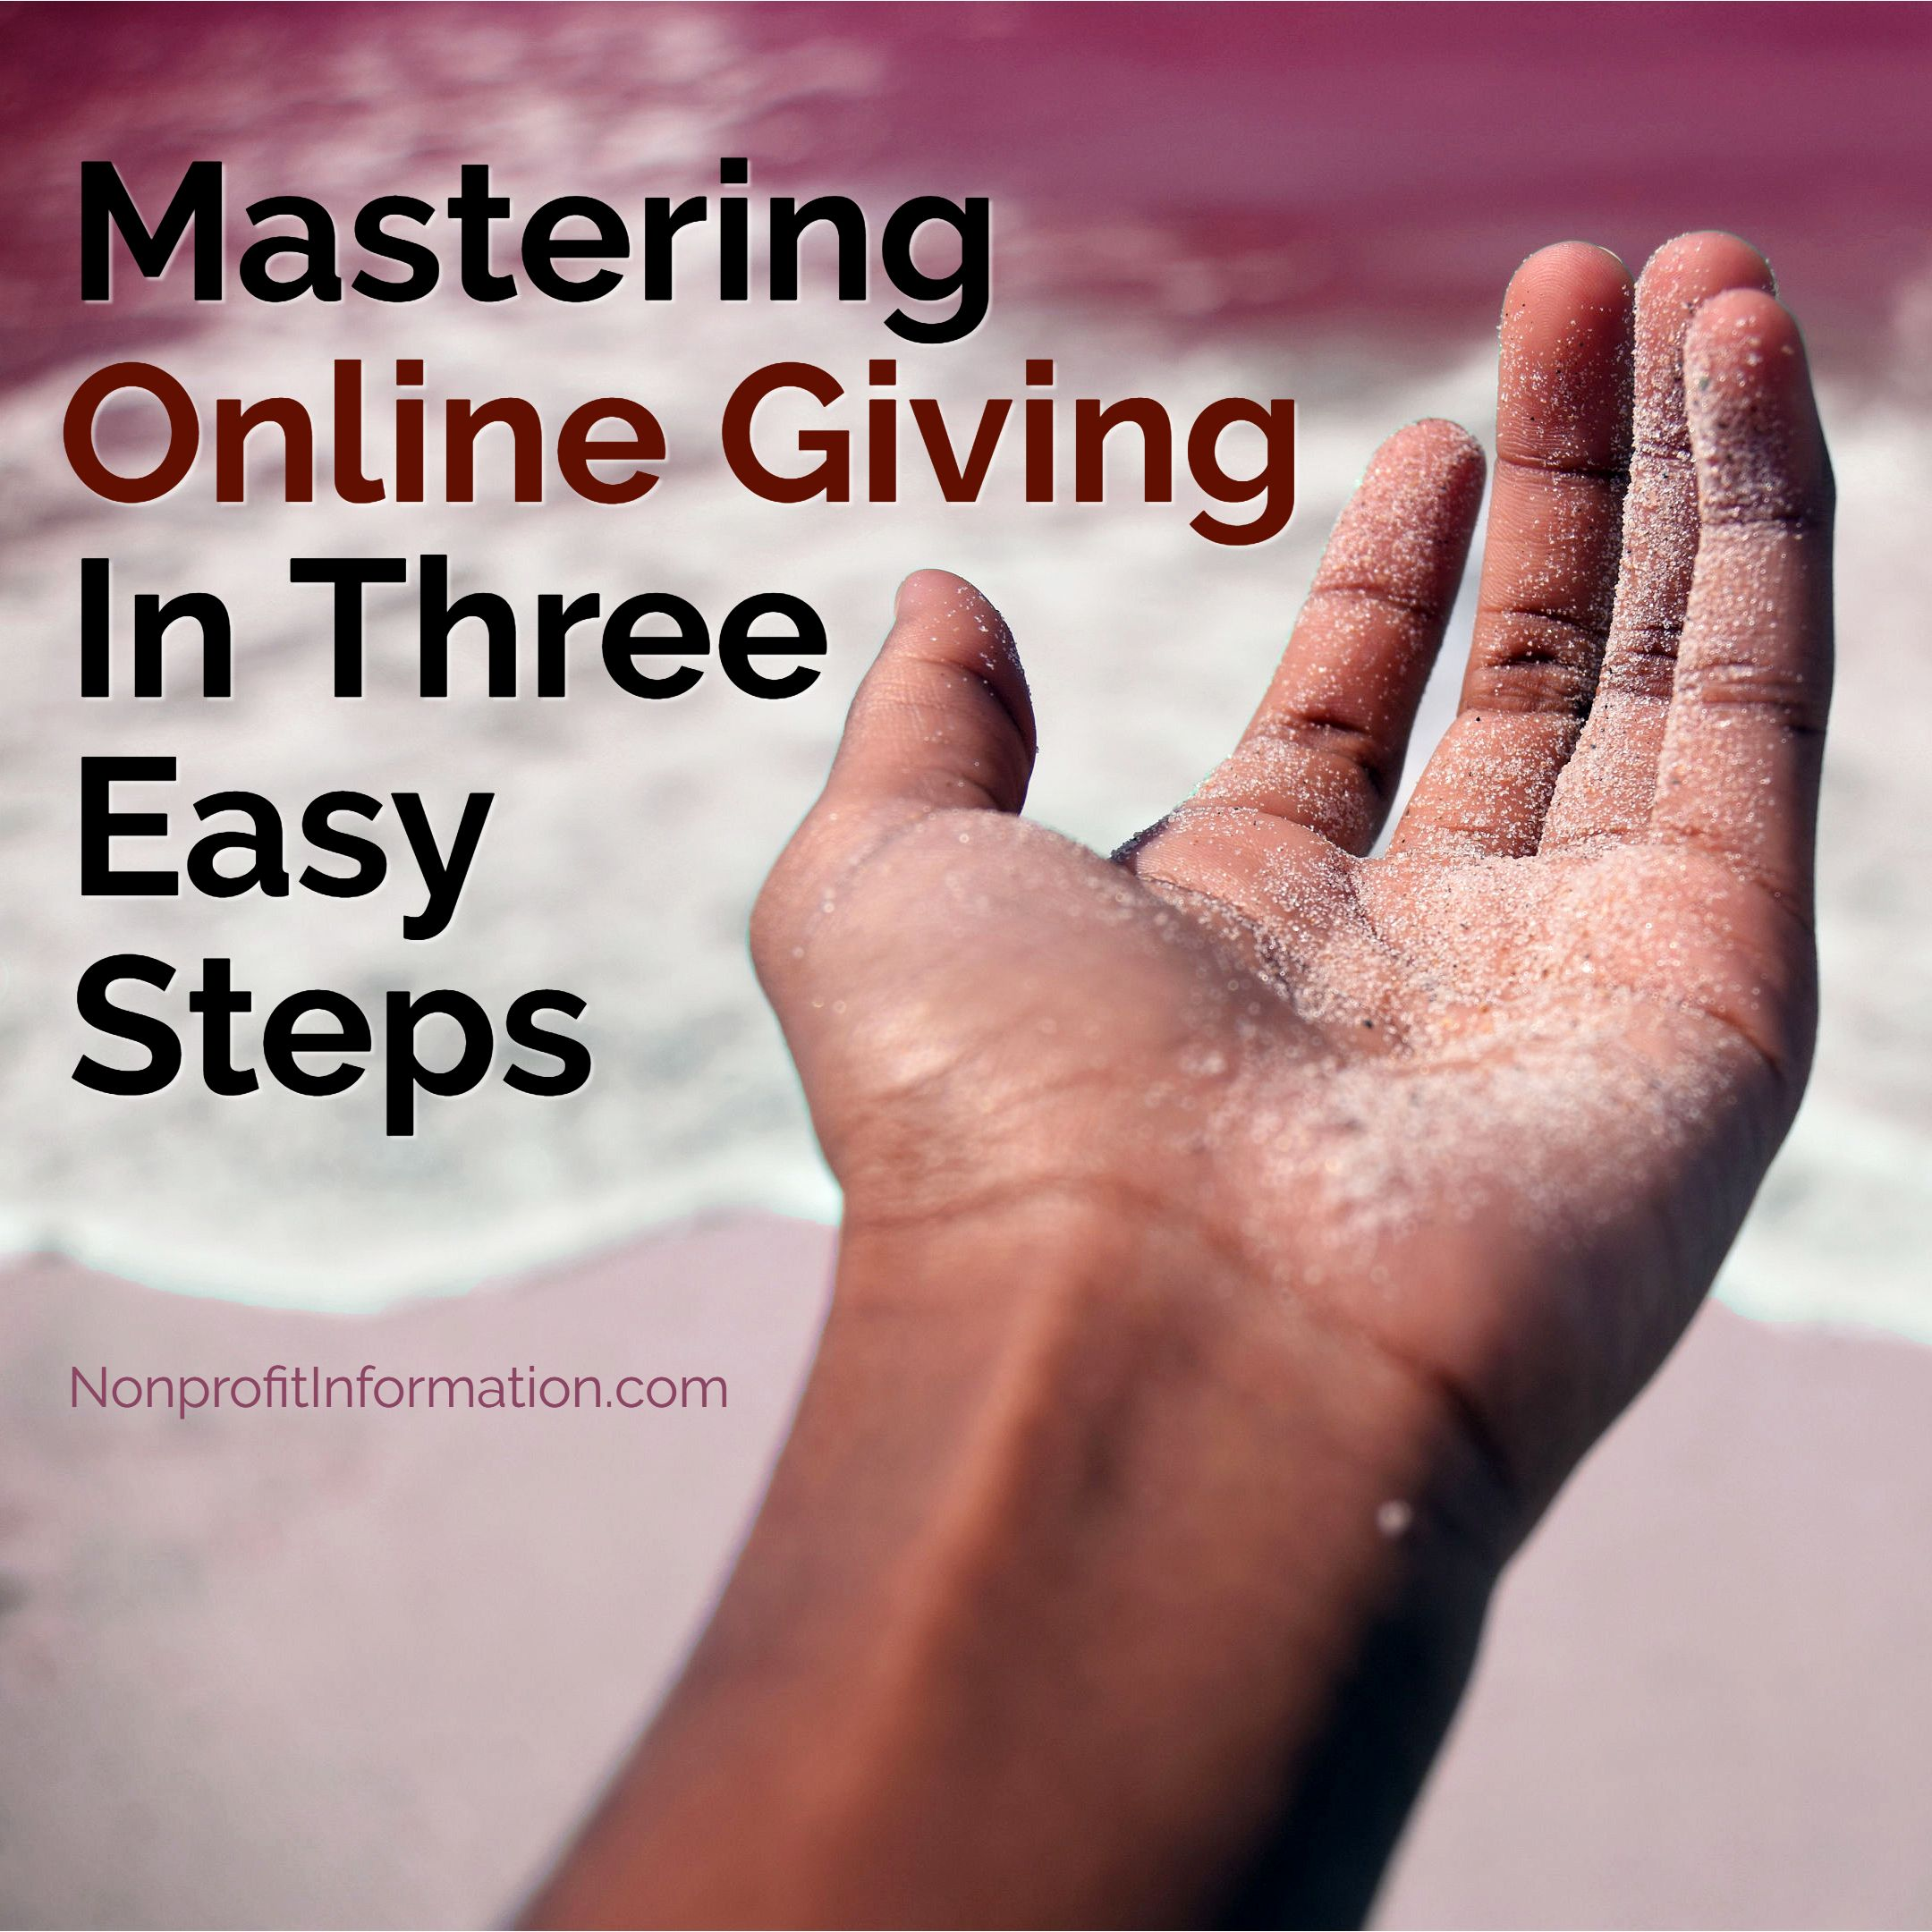 Mastering Online Giving In Three